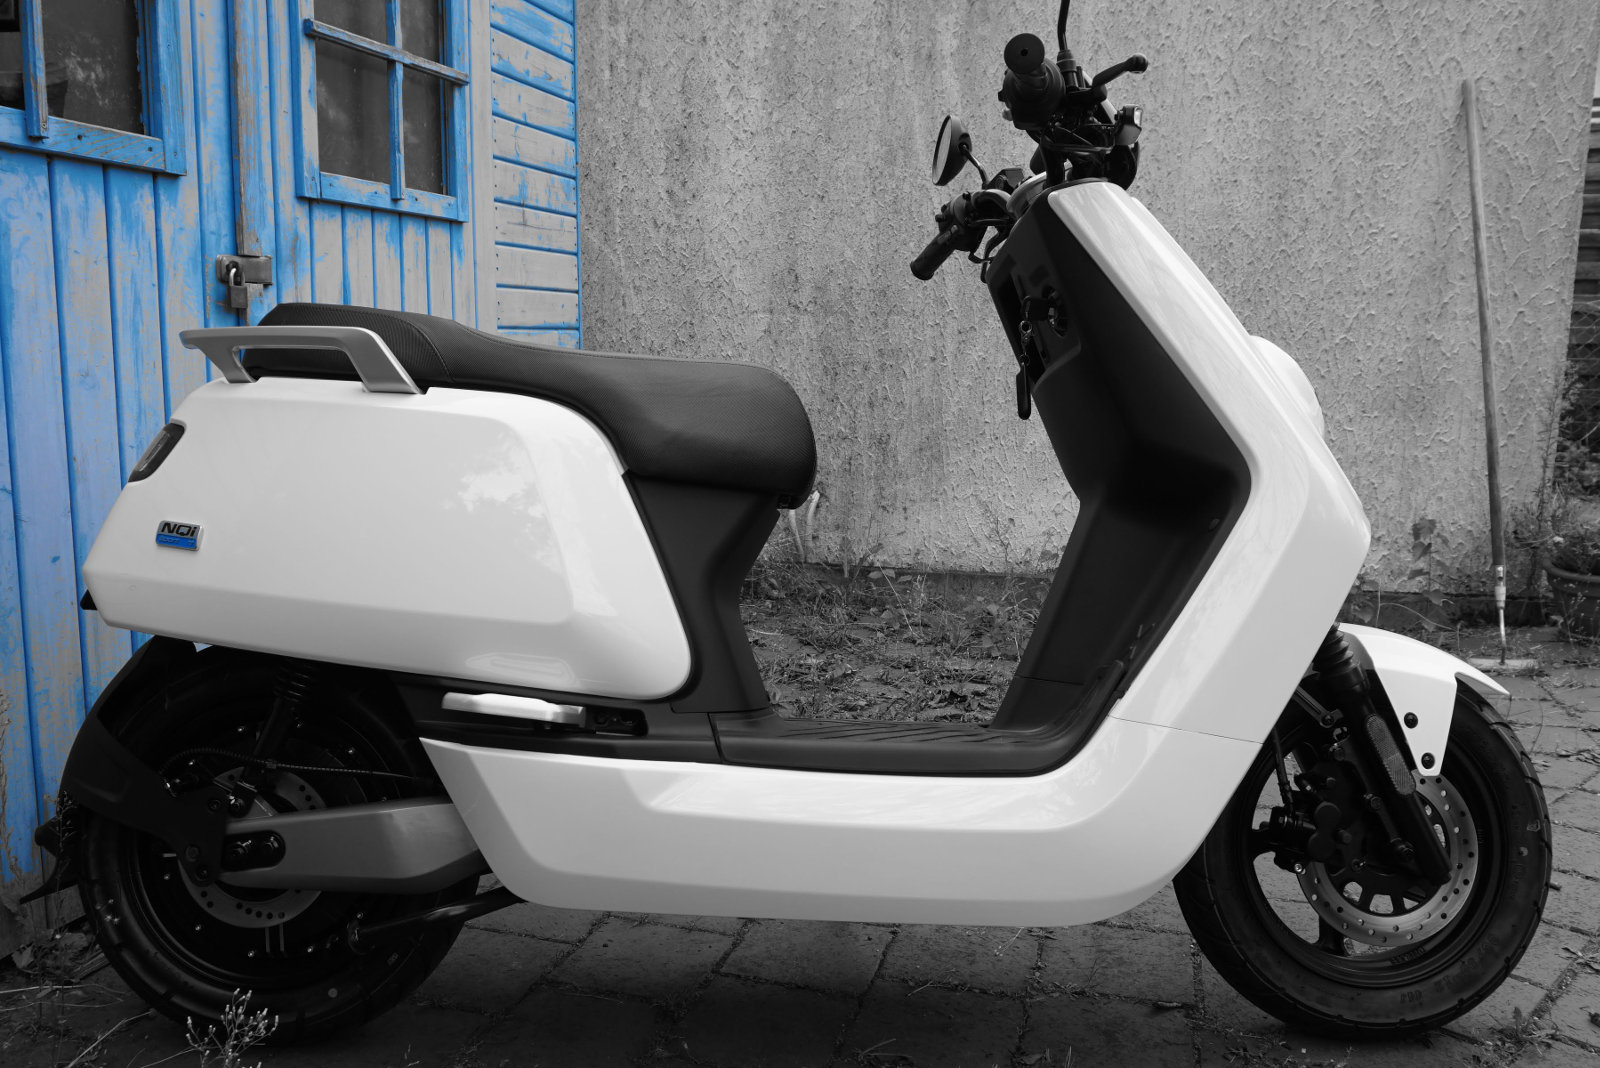 NIU MQI E-Scooter